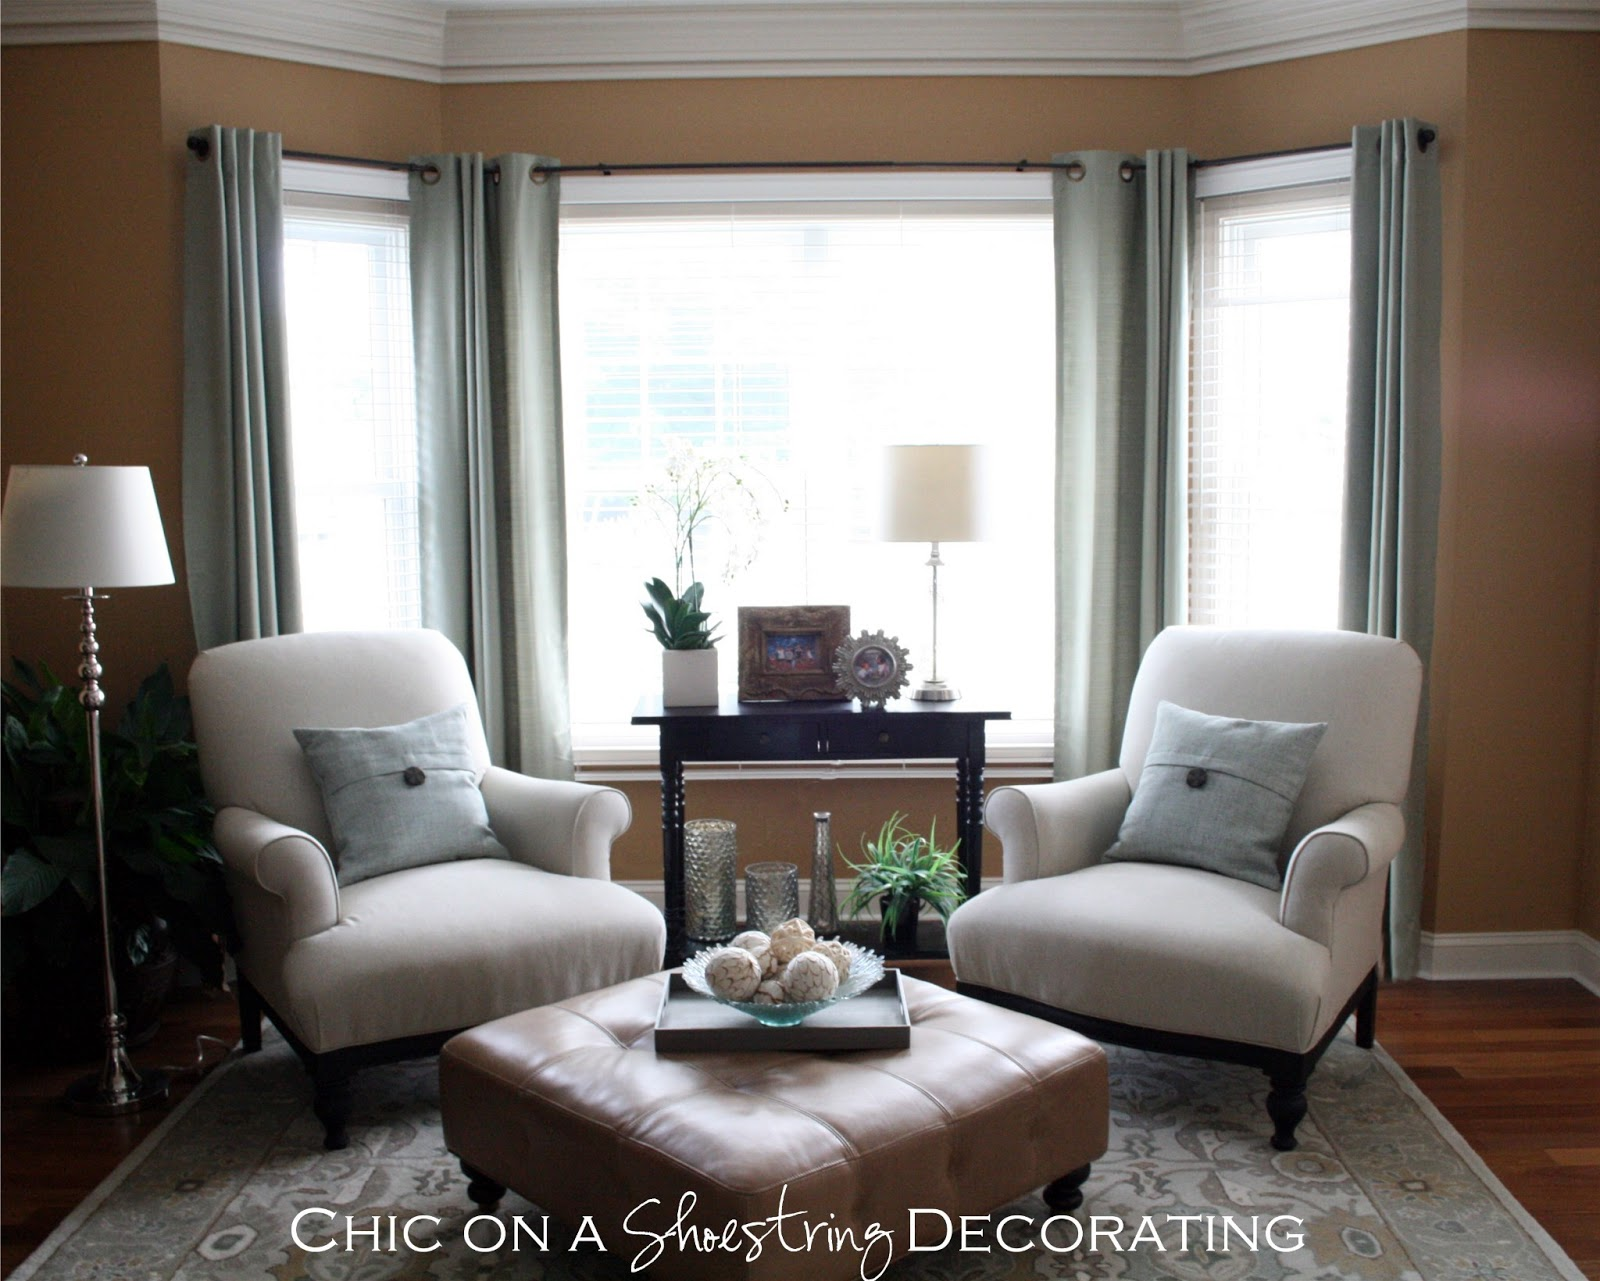 Chic on a shoestring decorating grand piano living room for Window placement in living room